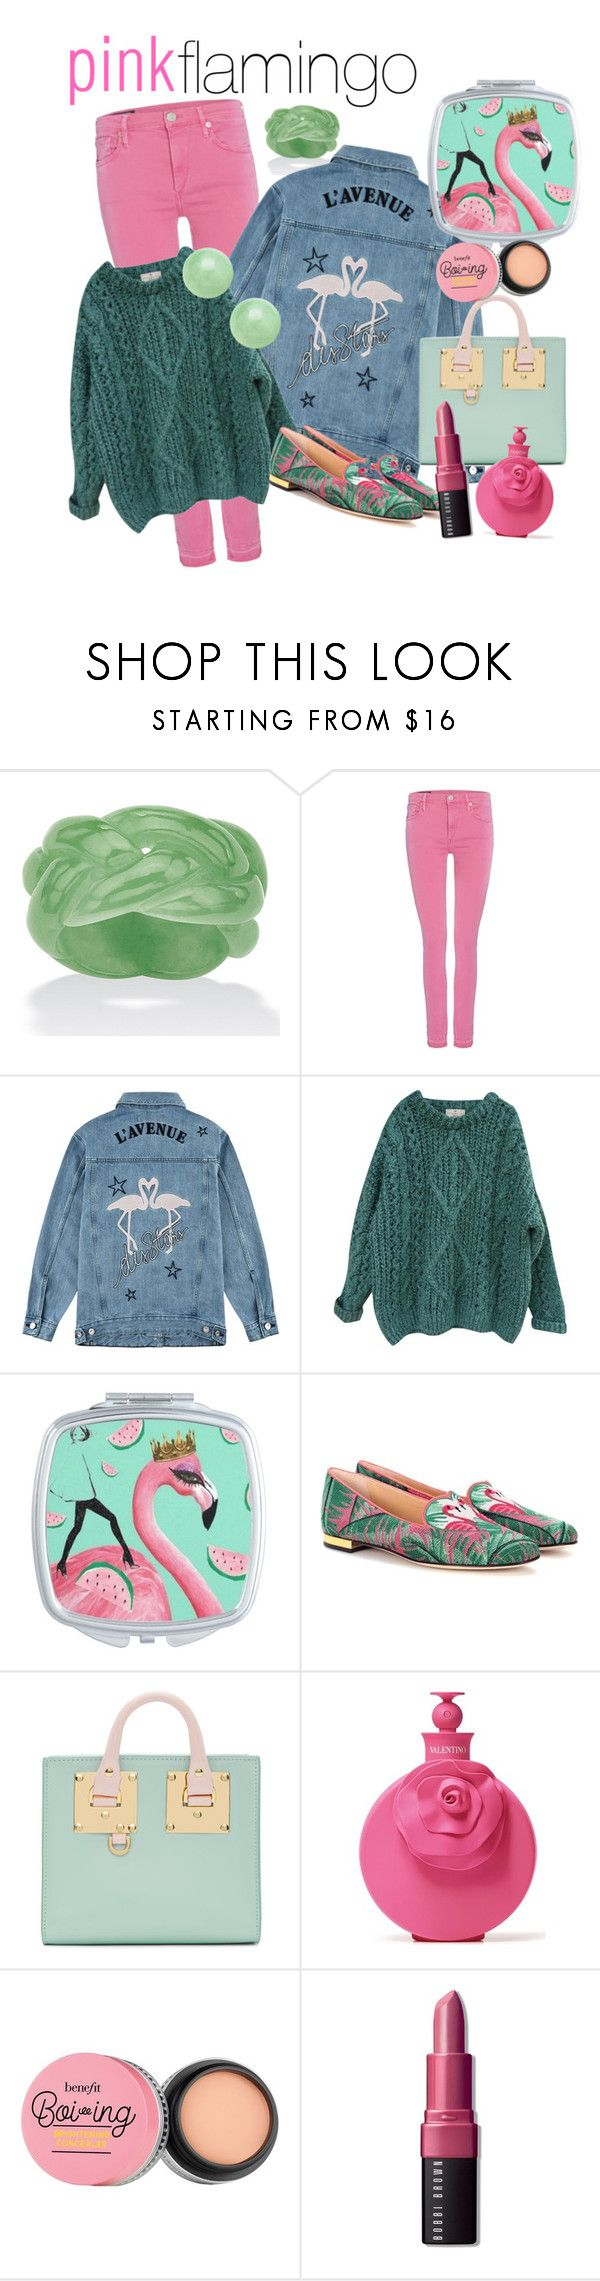 """""""pinkflamingo"""" by mimicu2 ❤ liked on Polyvore featuring Palm Beach Jewelry, True Religion, Être Cécile, Essentiel, Charlotte Olympia, Sophie Hulme, Valentino and Bobbi Brown Cosmetics"""